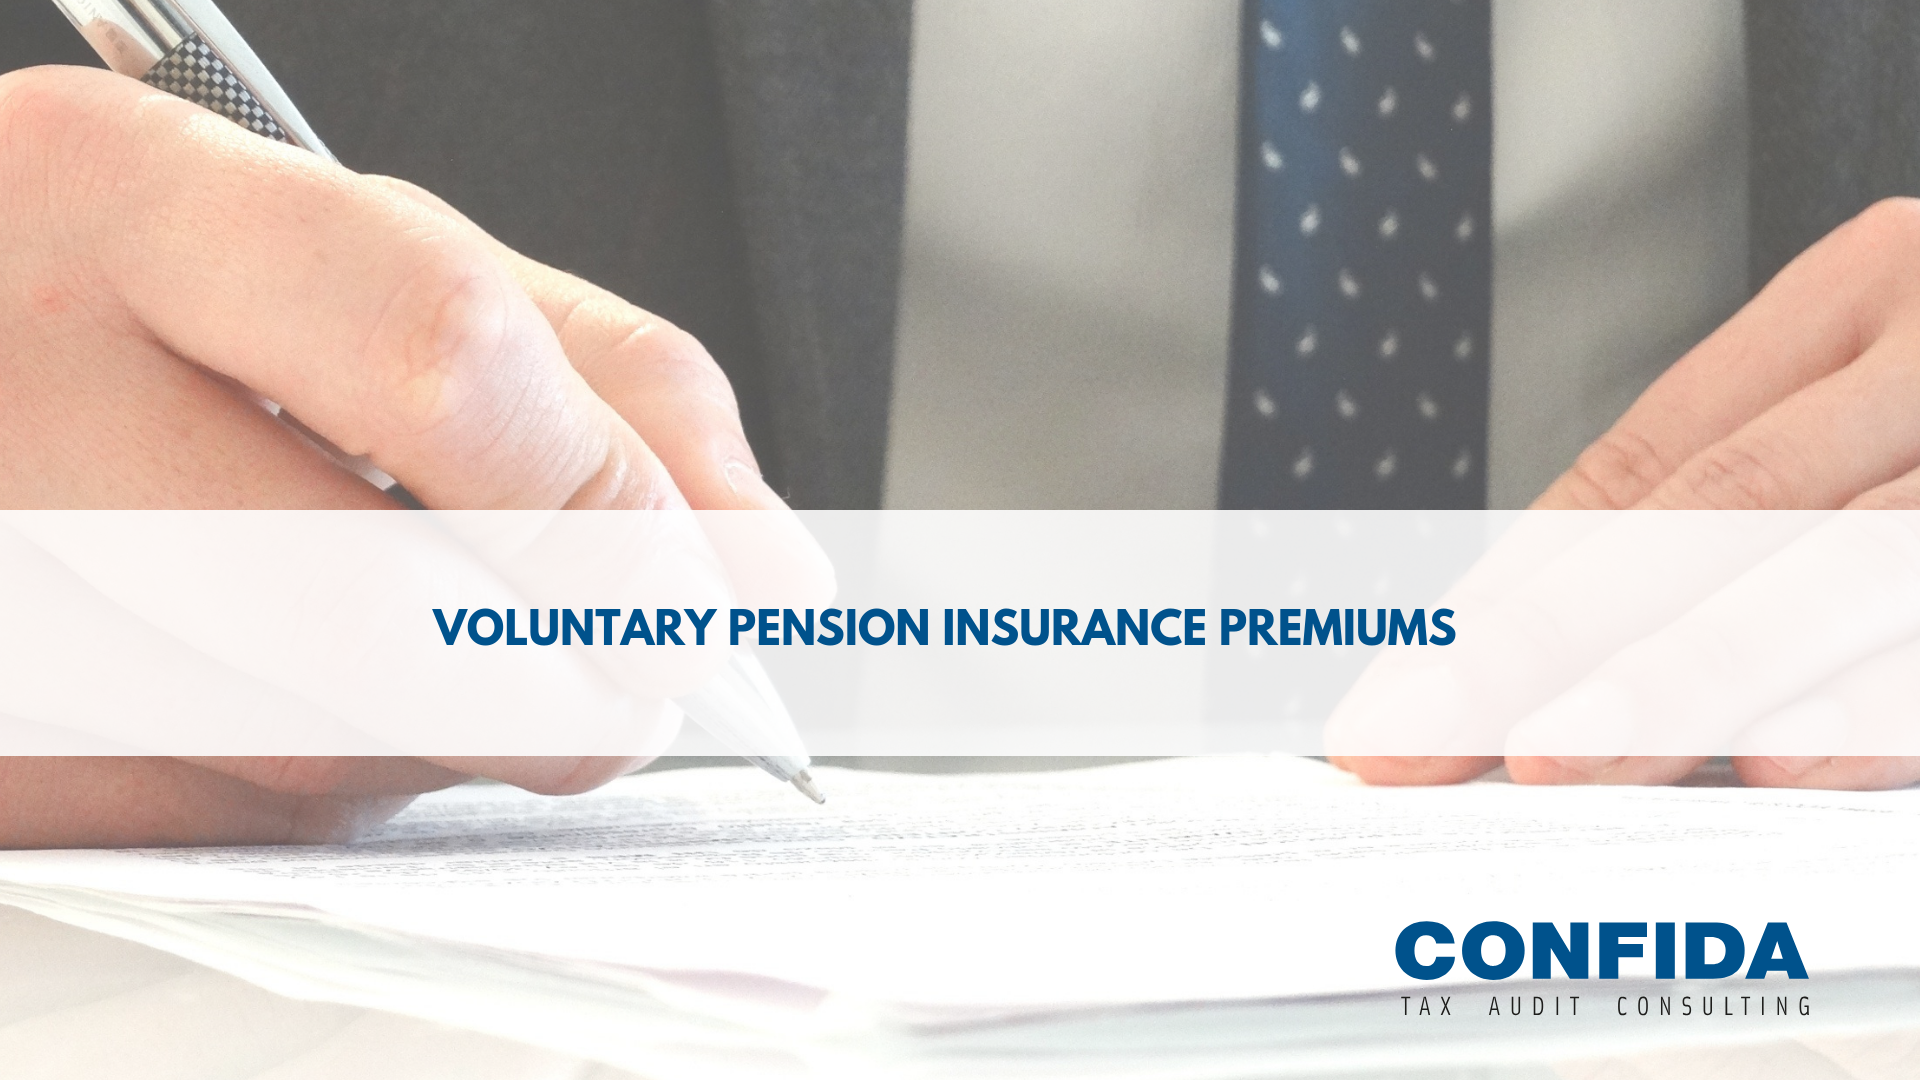 Voluntary pension insurance